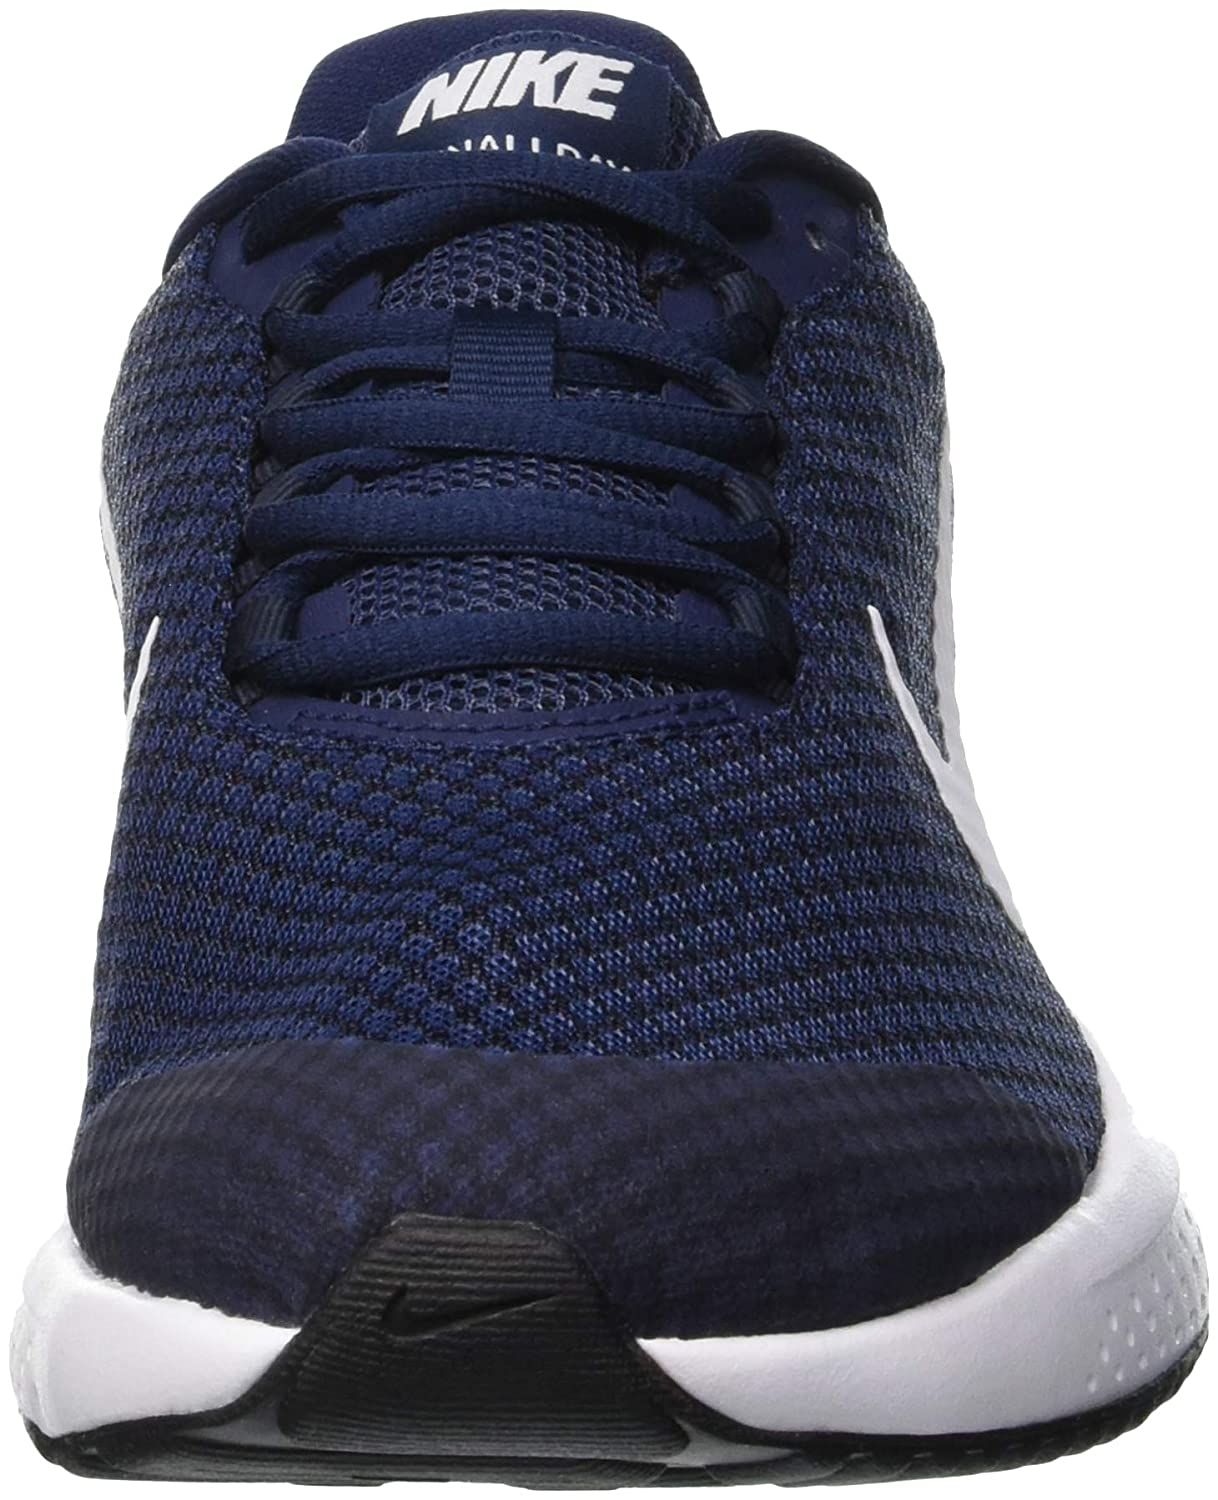 detailed look 37bdd 003bf Amazon.com   NIKE Men s RunAllDay Running Shoes   Road Running